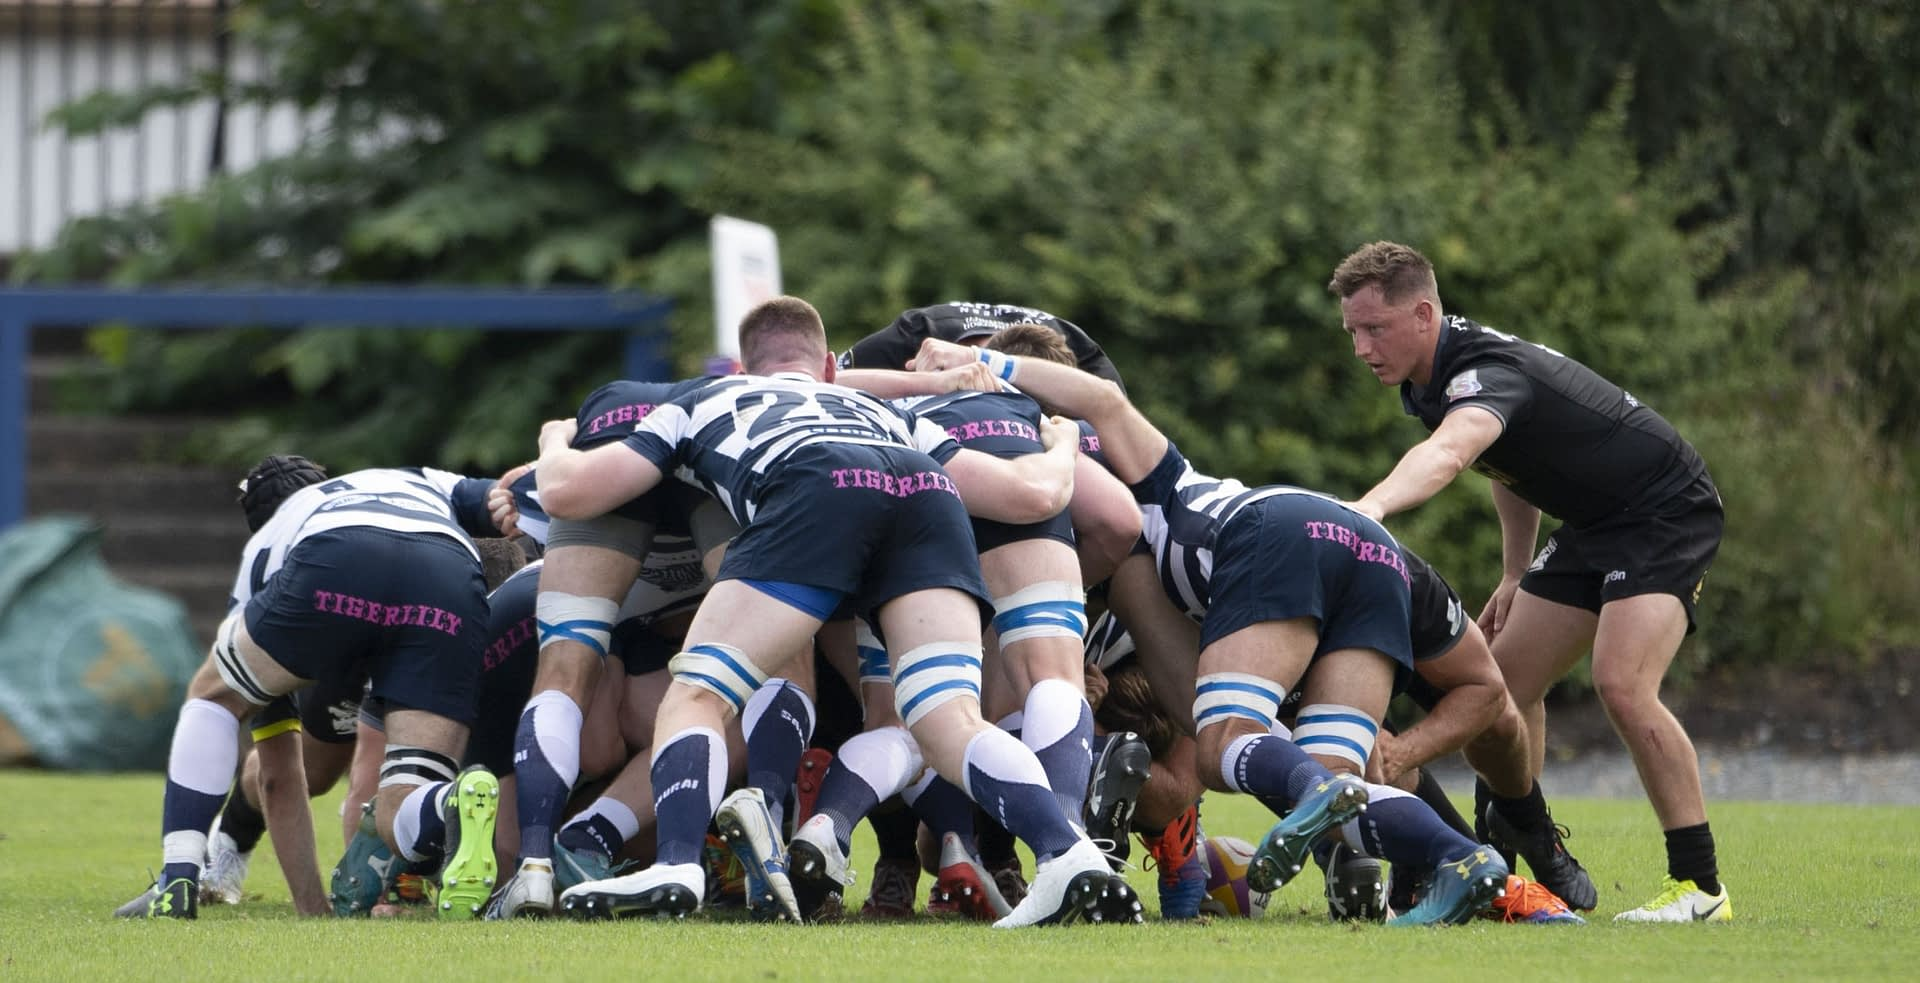 EDINBURGH, SCOTLAND - AUGUST 08: A Scrum takes place during a FOSROC Super6 match between Heriot's and Southern Knights at Heriot's Rugby Club, on August 08, 2021, in Edinburgh, Scotland. (Photo by Paul Devlin / SNS Group)